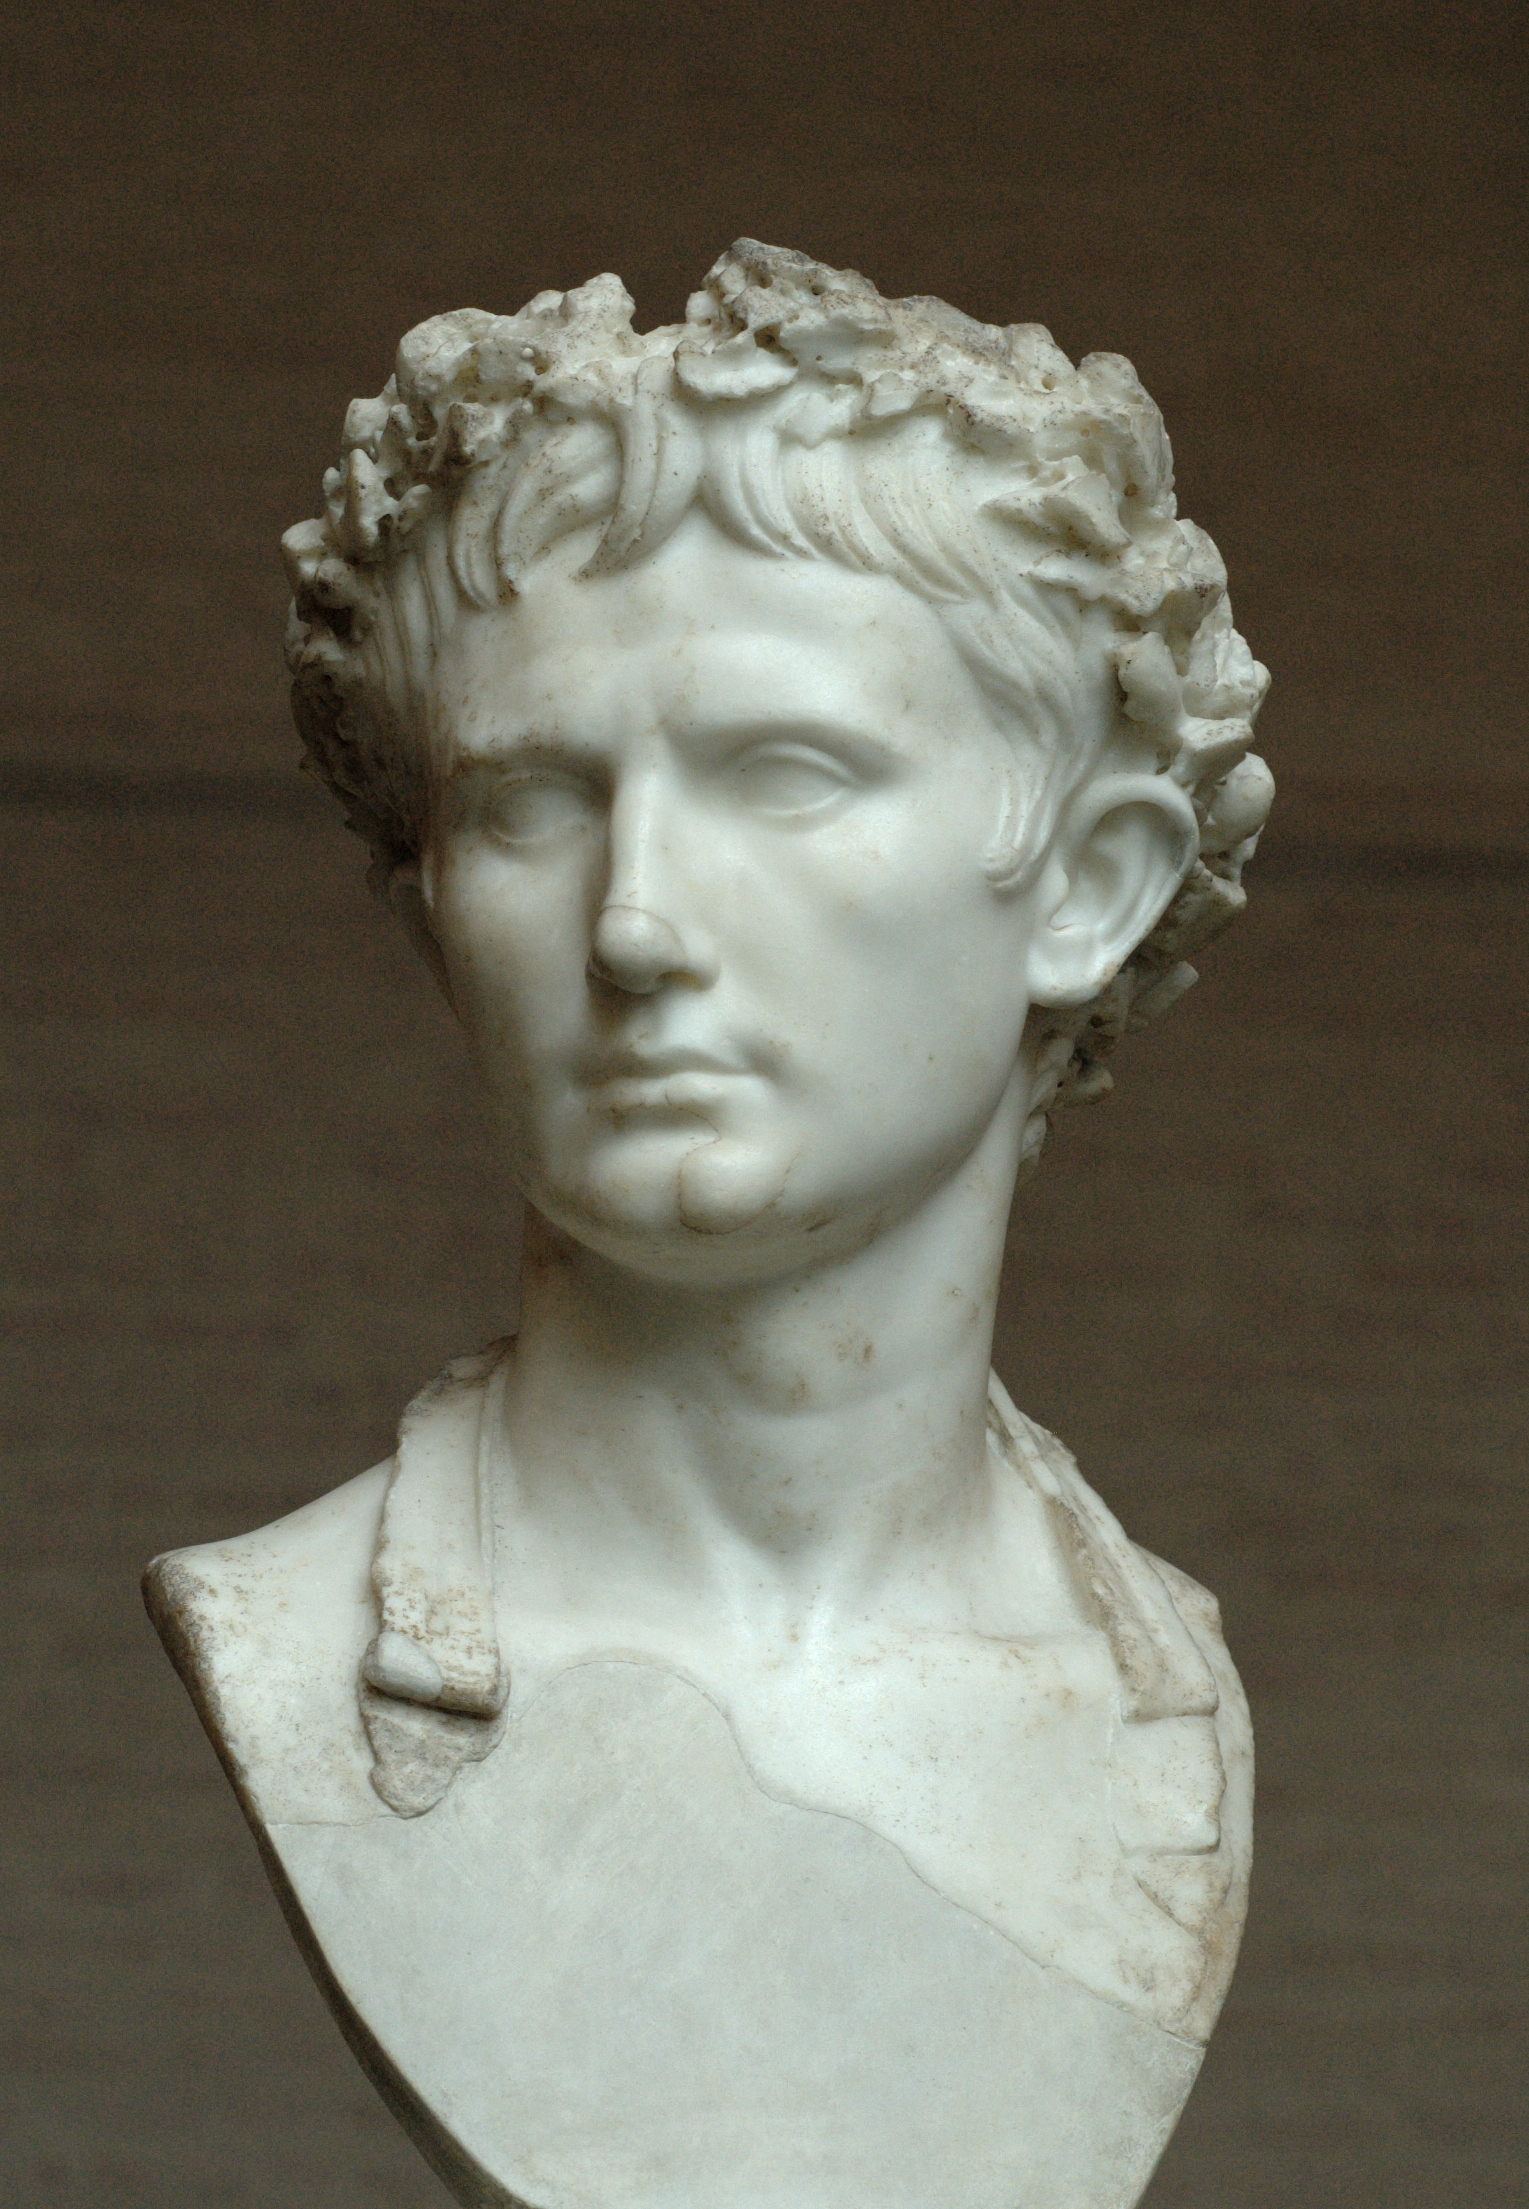 Statue of Augustus Caeser. Image source: Wikimedia Commons